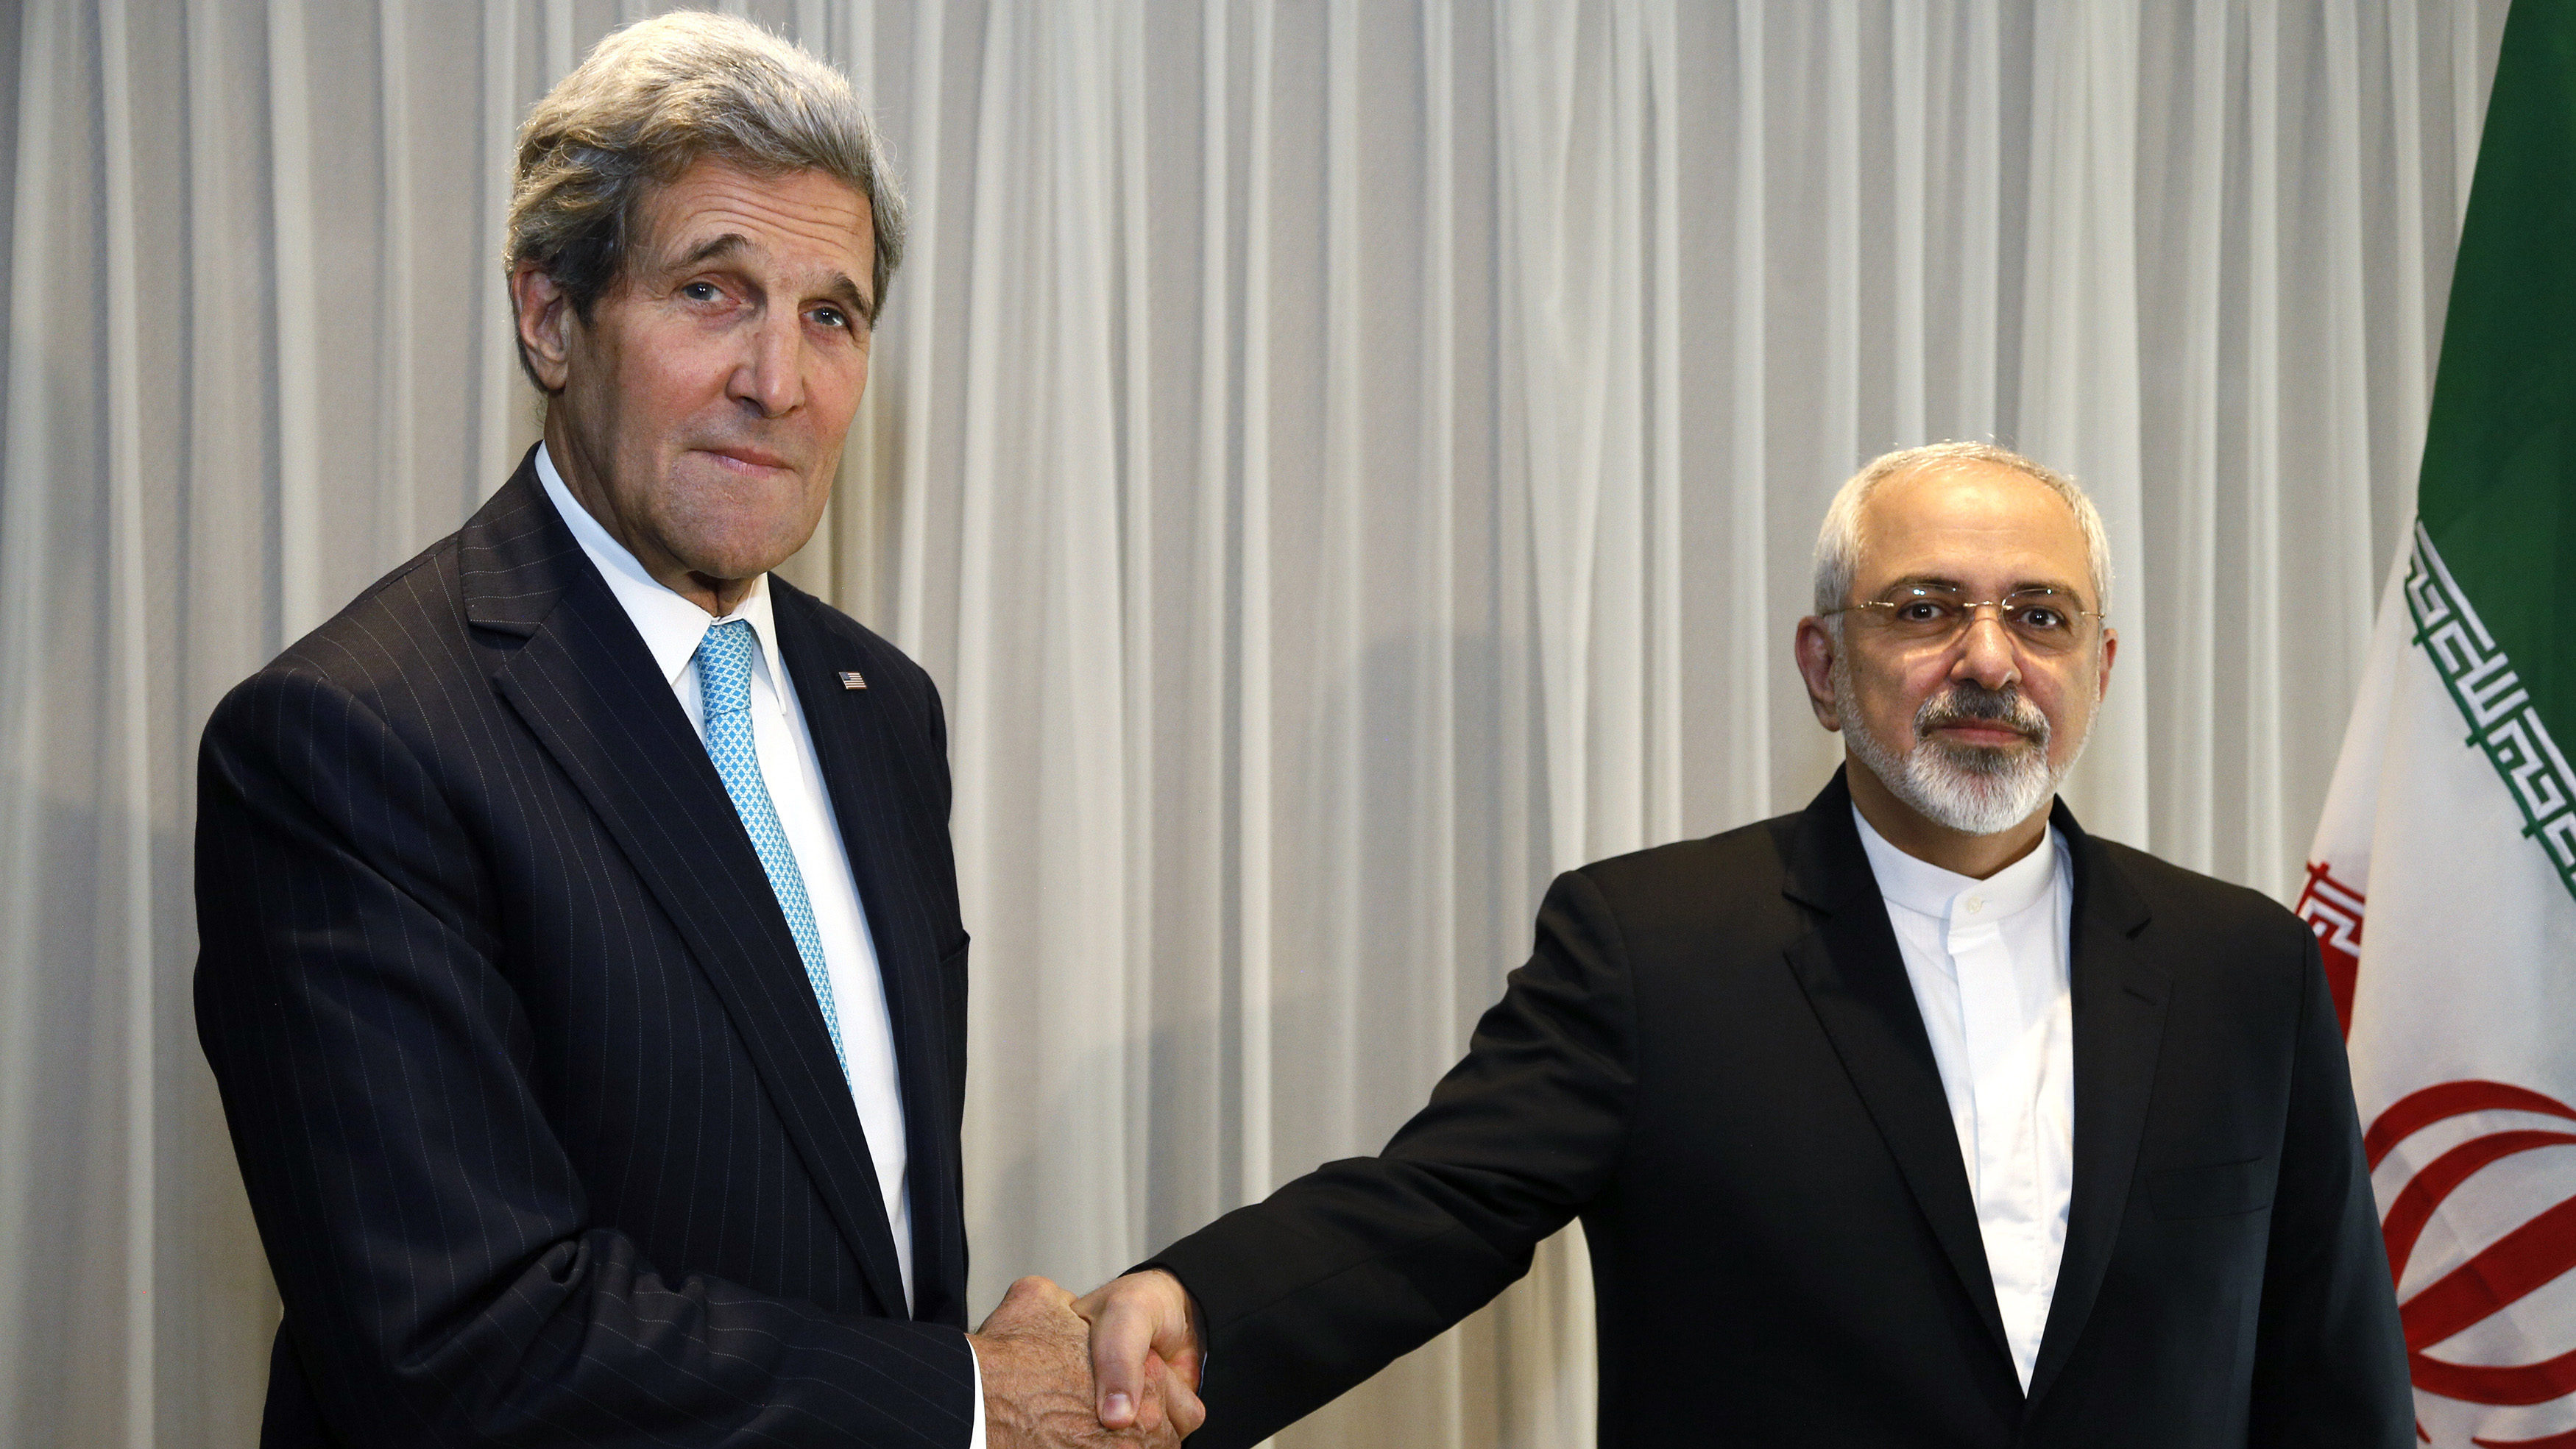 US Secretary of State John Kerry shakes hands with Iranian Foreign Minister Mohammad Javad Zarif before a meeting in Geneva on January 14, 2015.